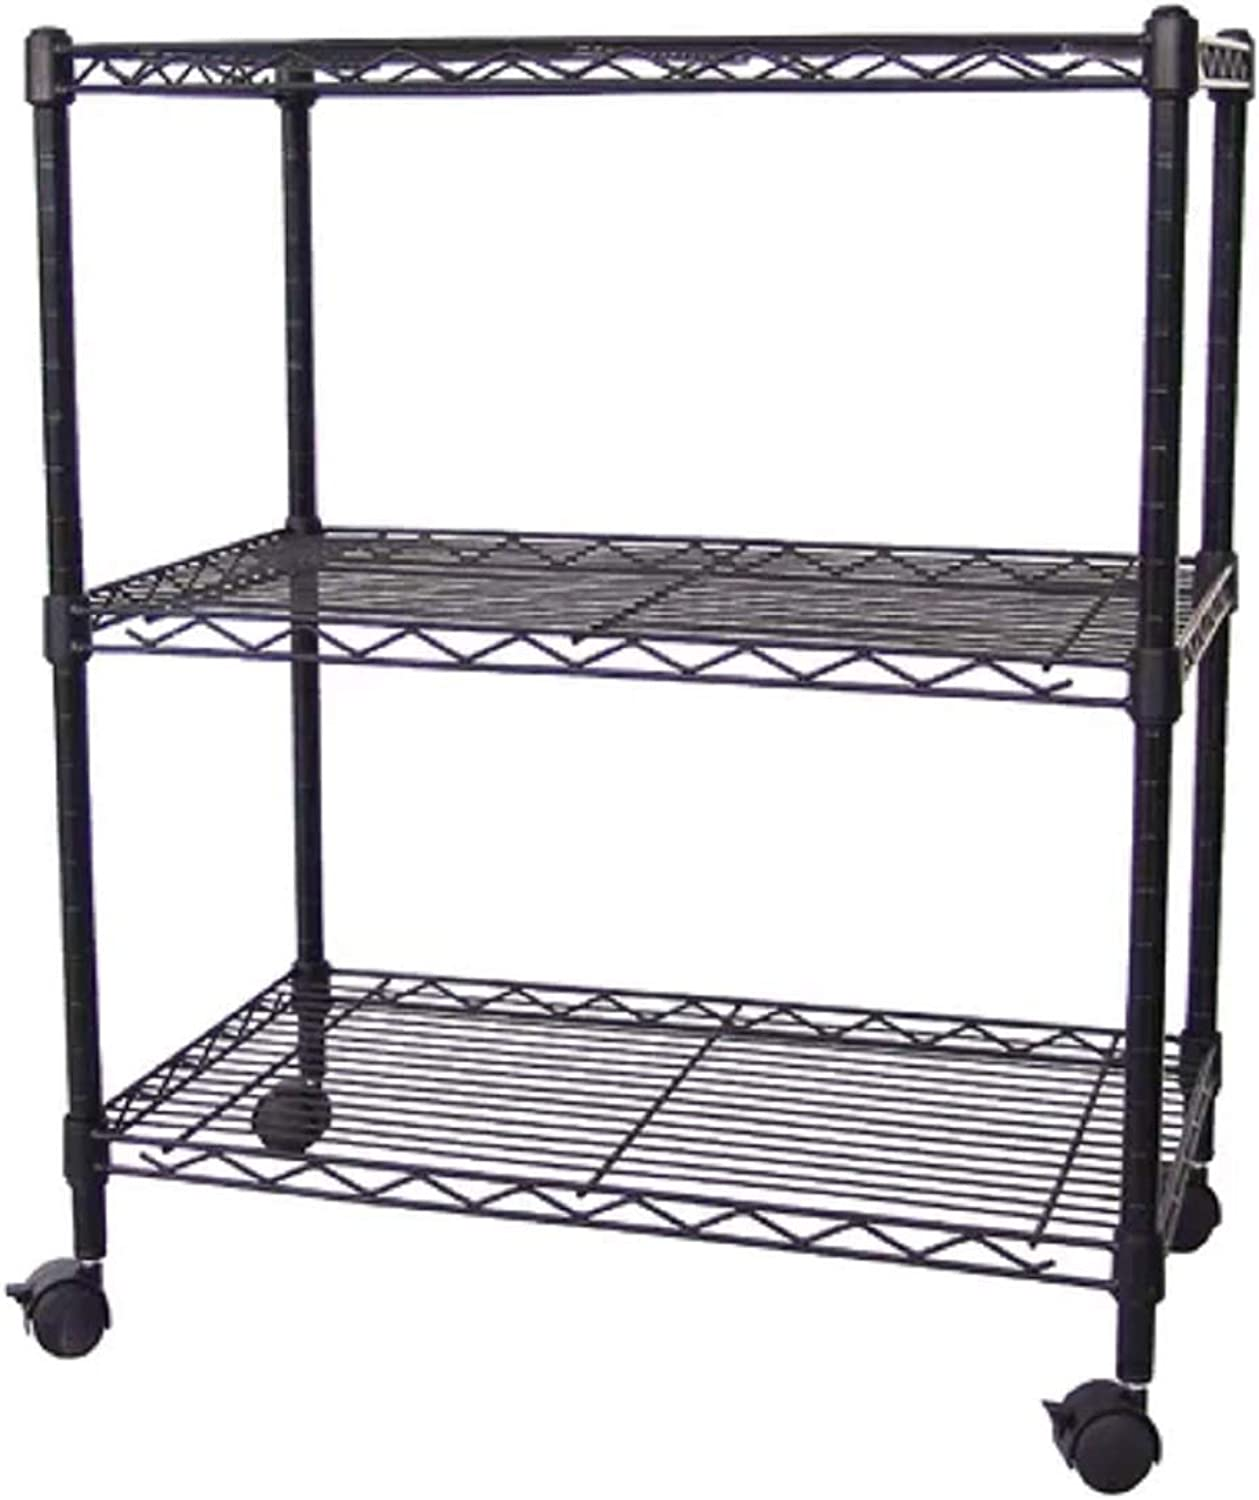 Open Kitchen Shelving. Multi-Purpose 3-Tier Wire Unit Casters, 24 in. X 14 in. X 28 in, Black Open Kitchen Shelving